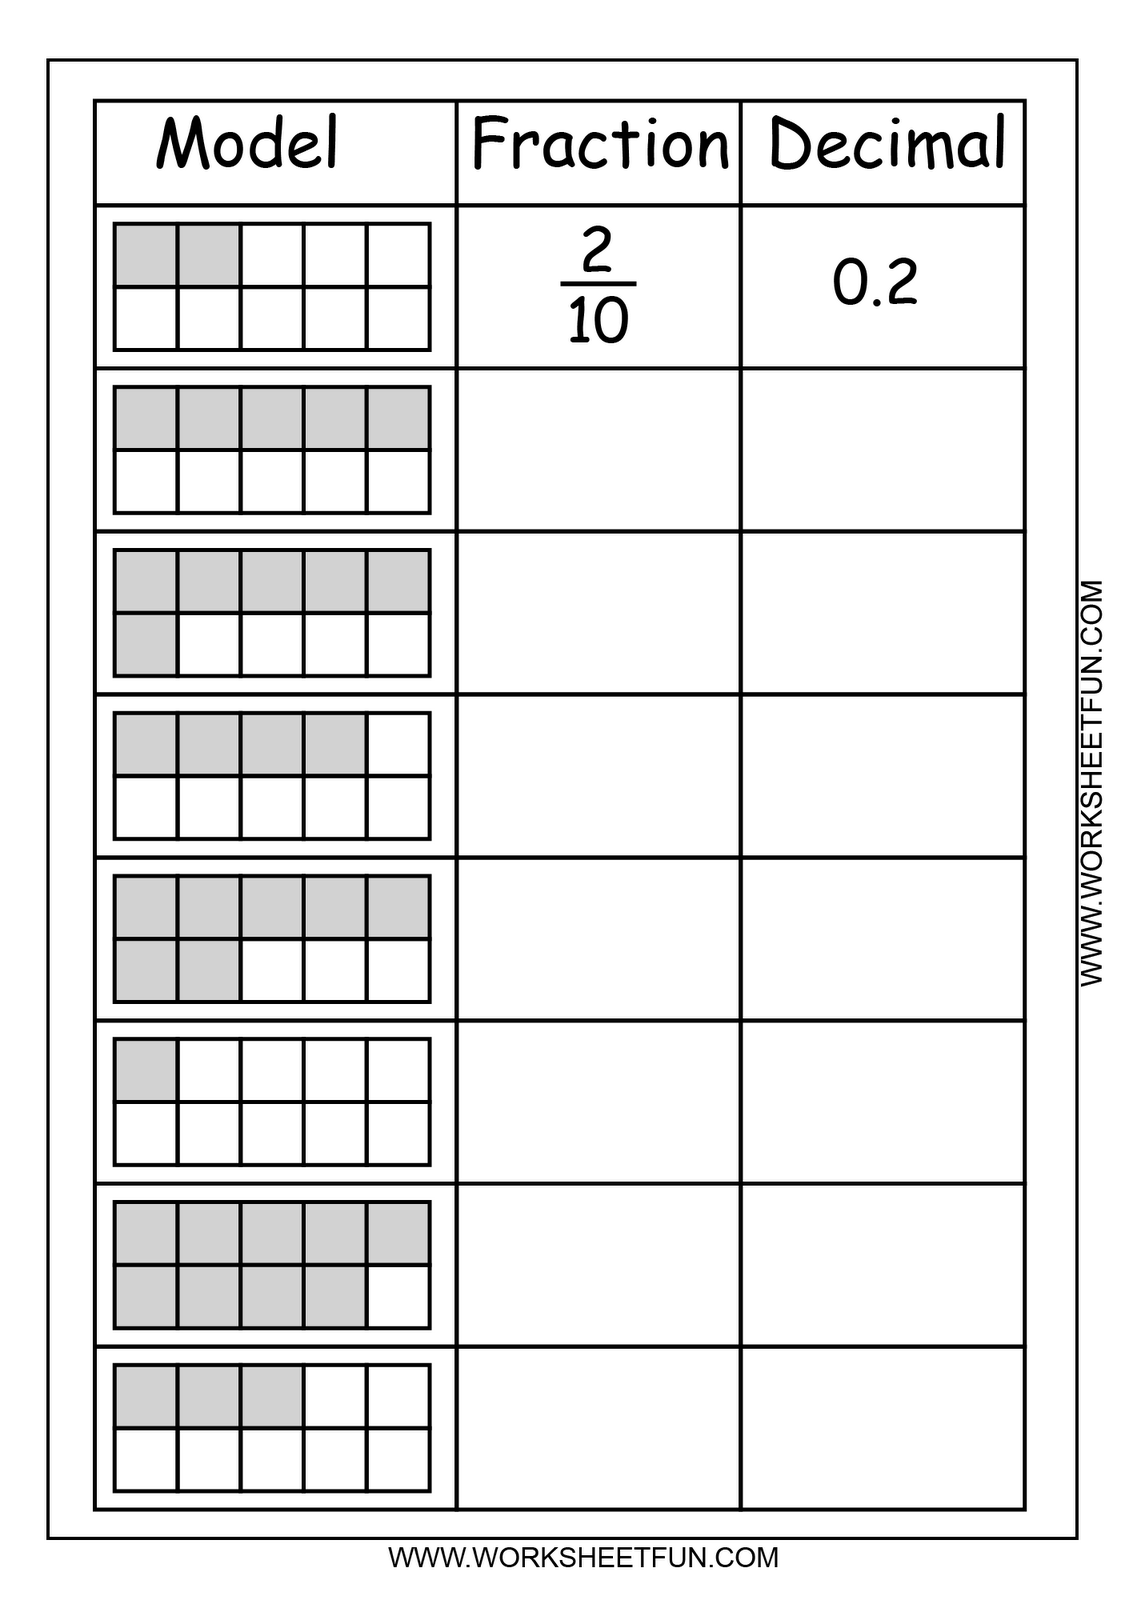 medium resolution of Converting Fractions Into Decimals Worksheet 4th Grade   Printable  Worksheets and Activities for Teachers